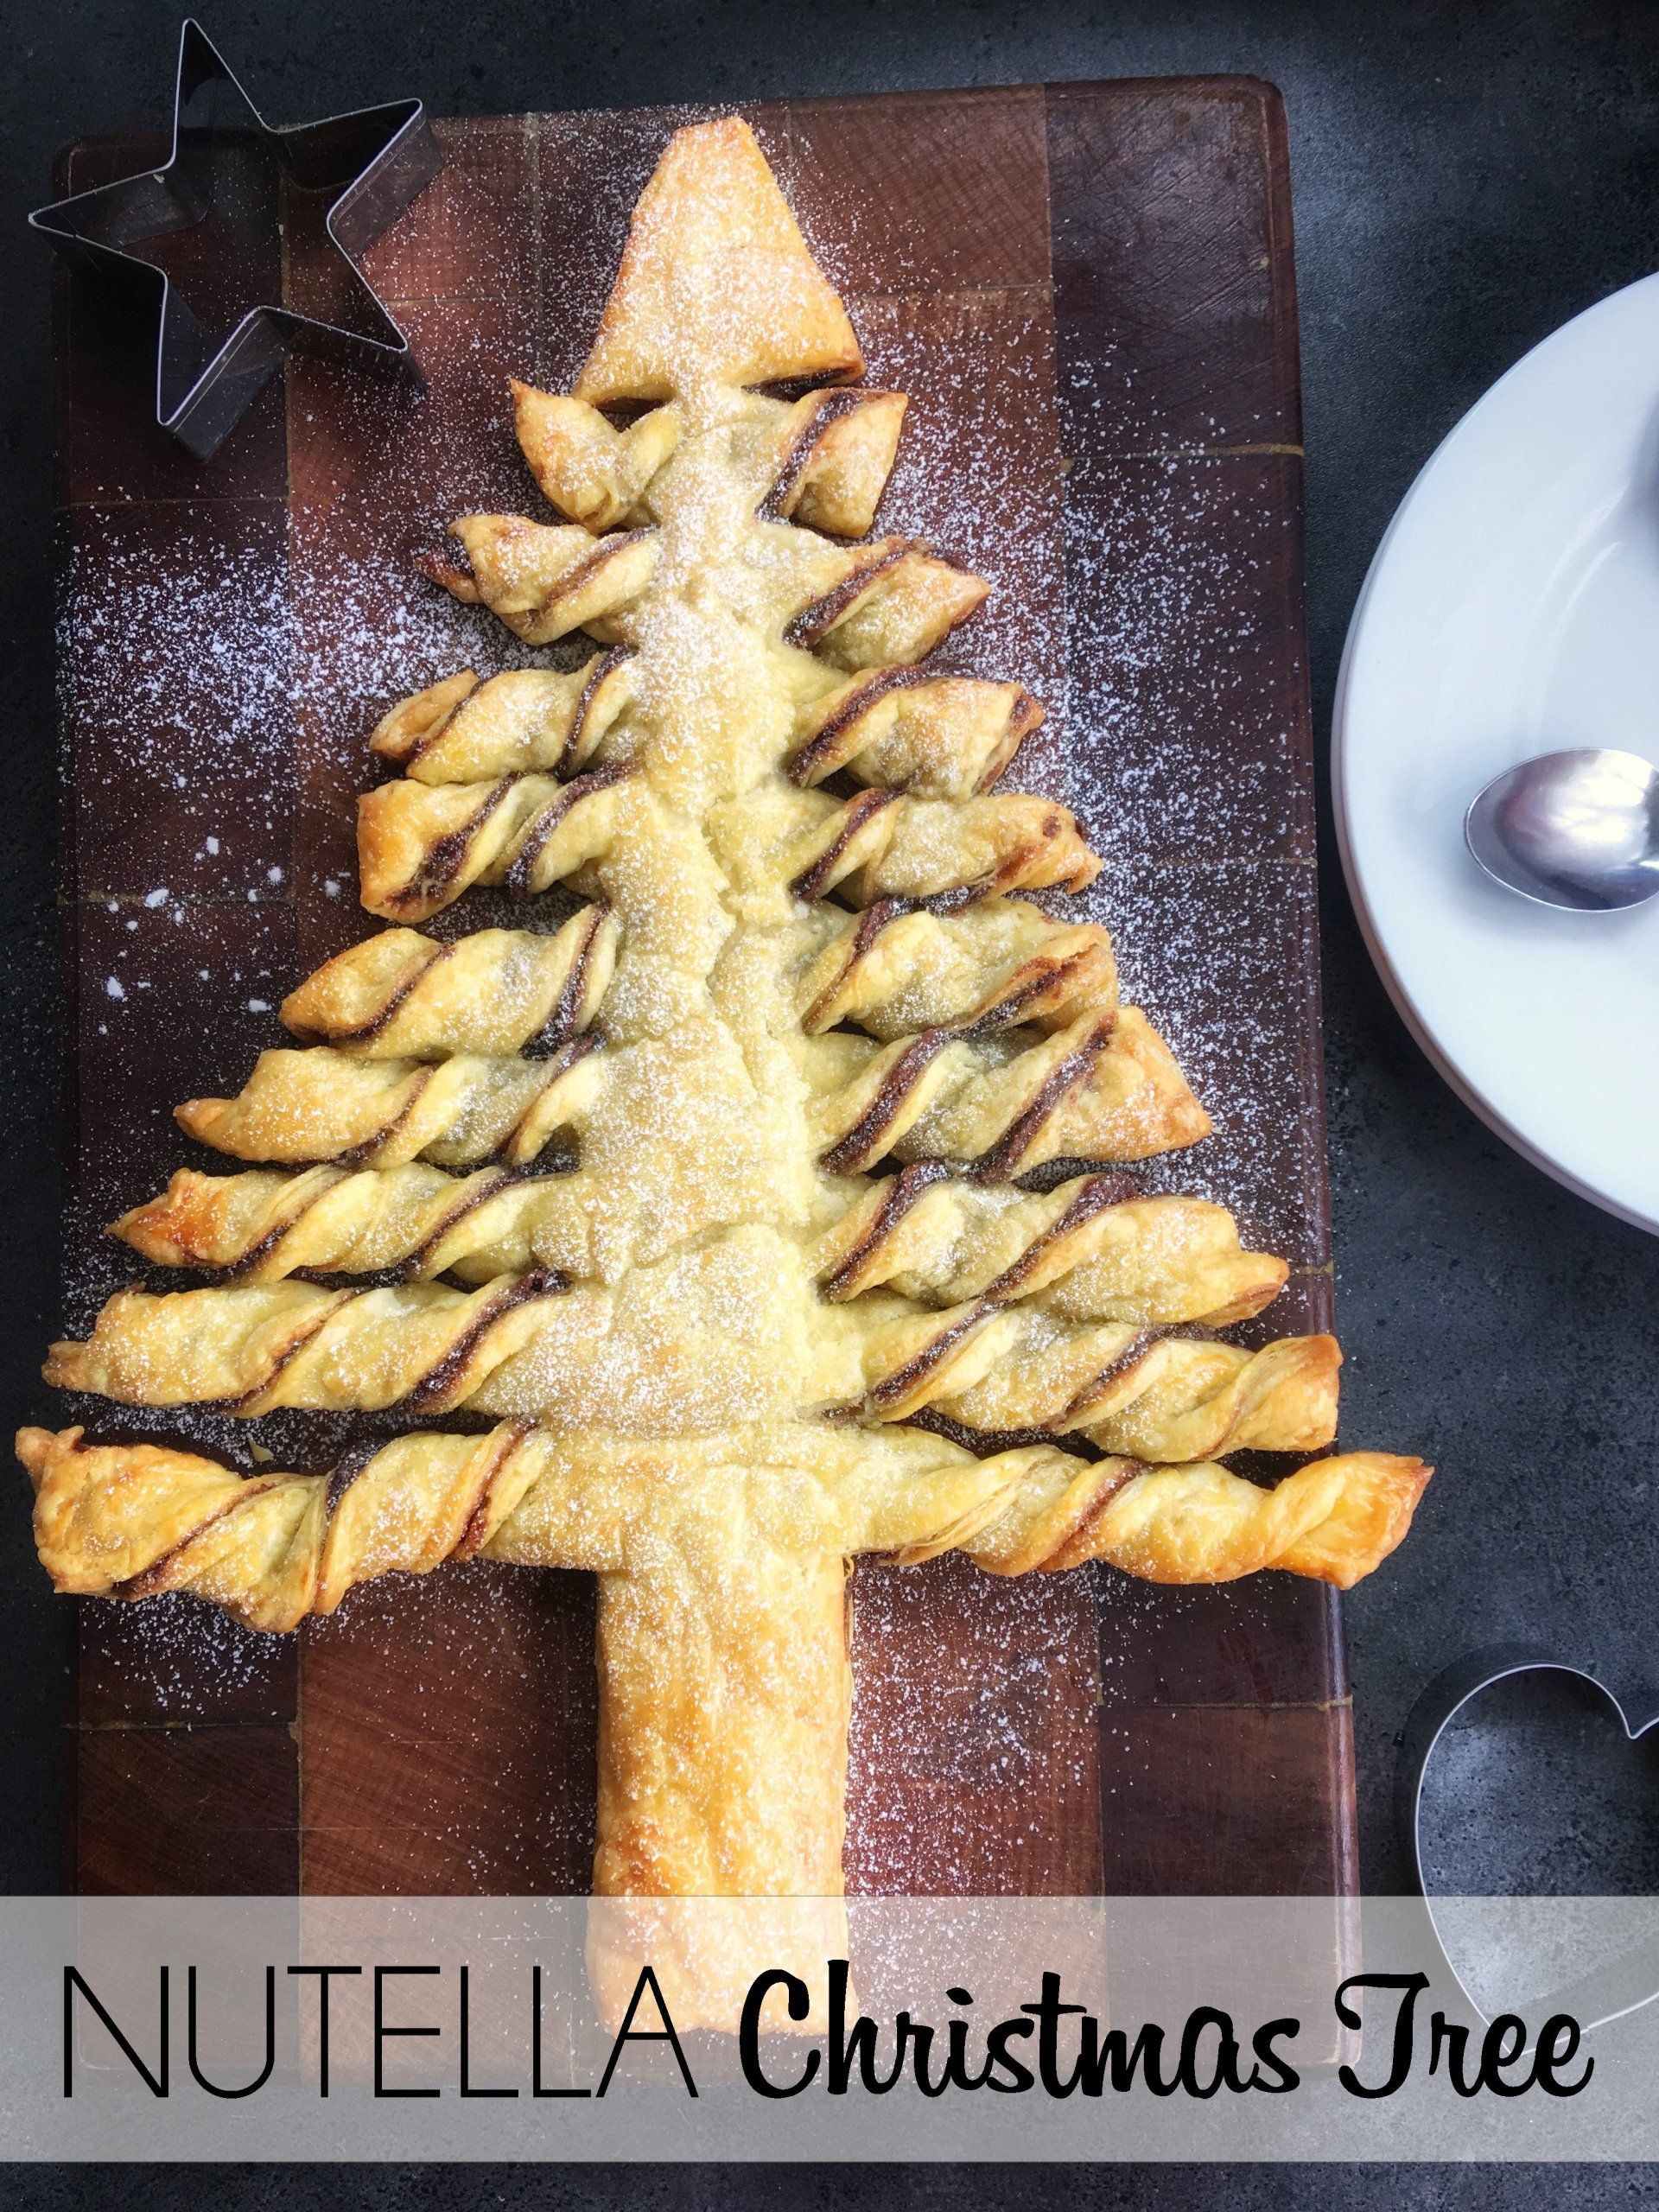 nutella christmas tree pull apart includes substitutes and allergy friendly options